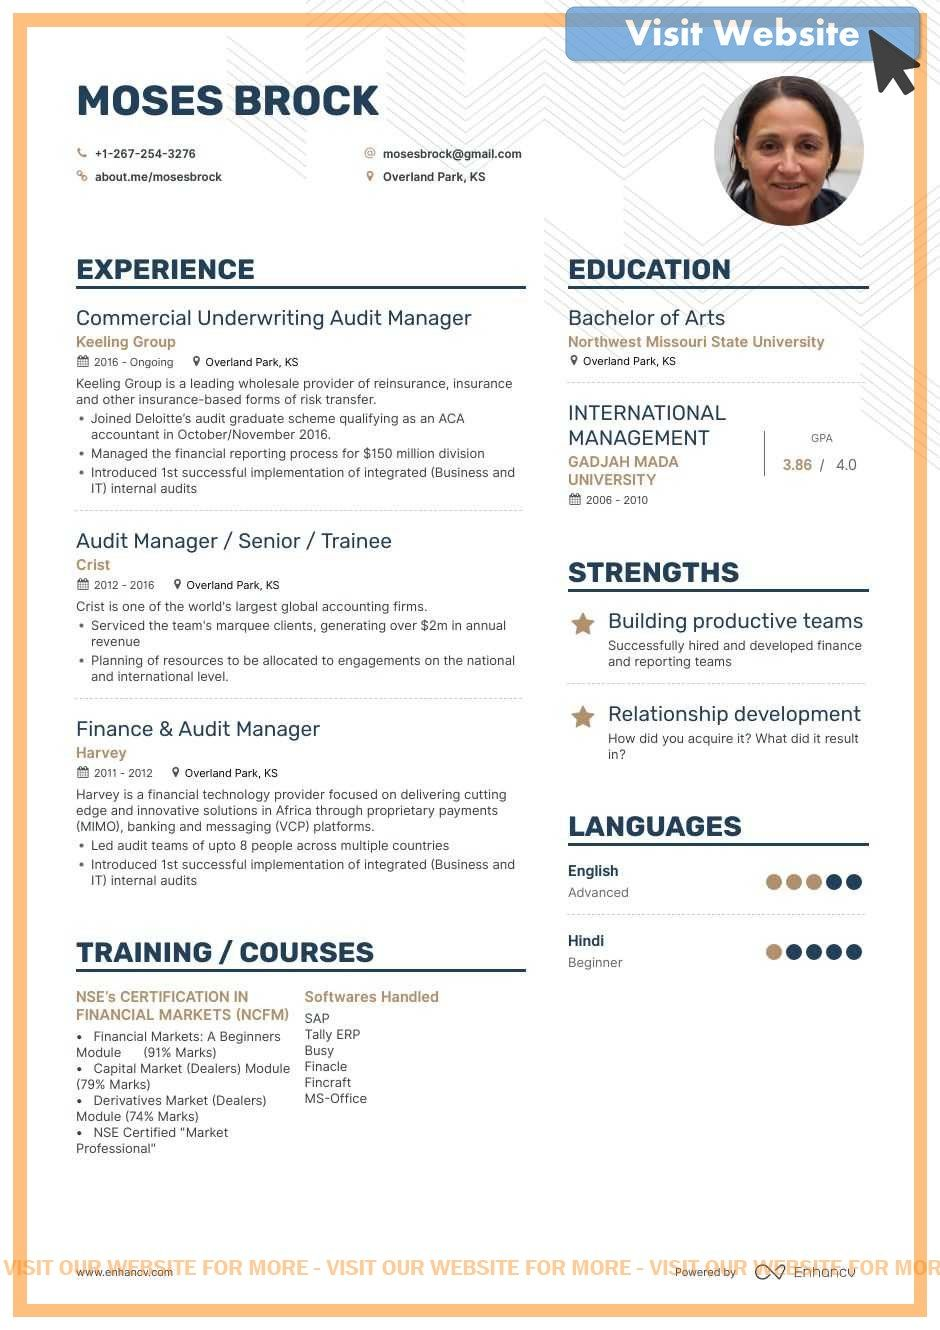 Auditor Resume Samples 2020 Auditor Resume Templates 2021 In 2021 Resume Examples Good Resume Examples Resume